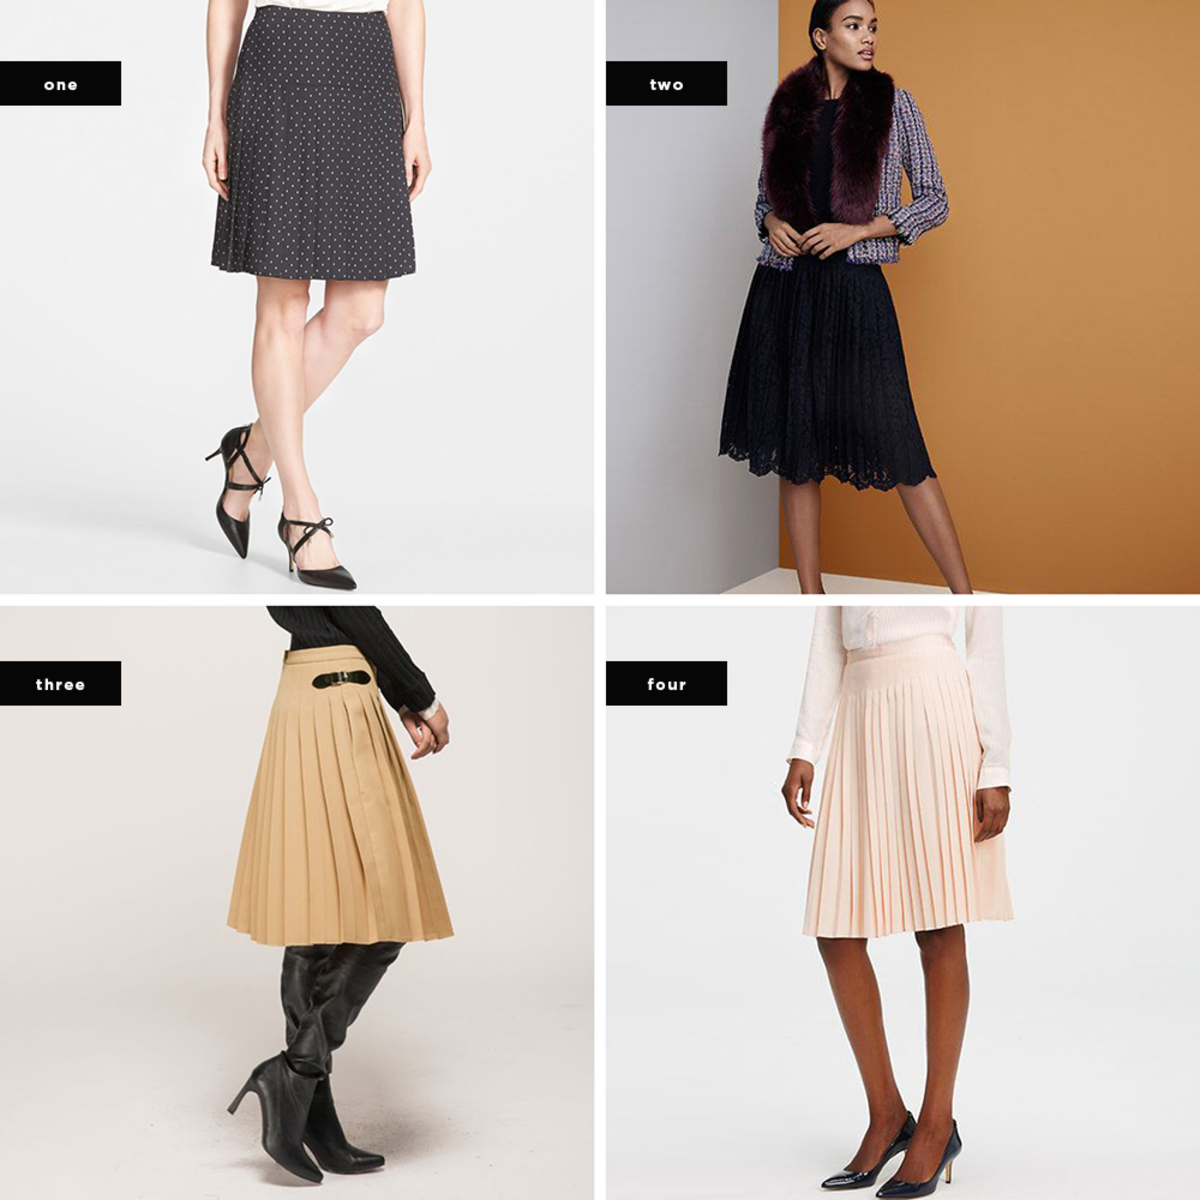 1. Nordstrom, $20 / 2. Ann Taylor, $188 / 3. Front Row Shop, $54 / 4. Ann Taylor, $188